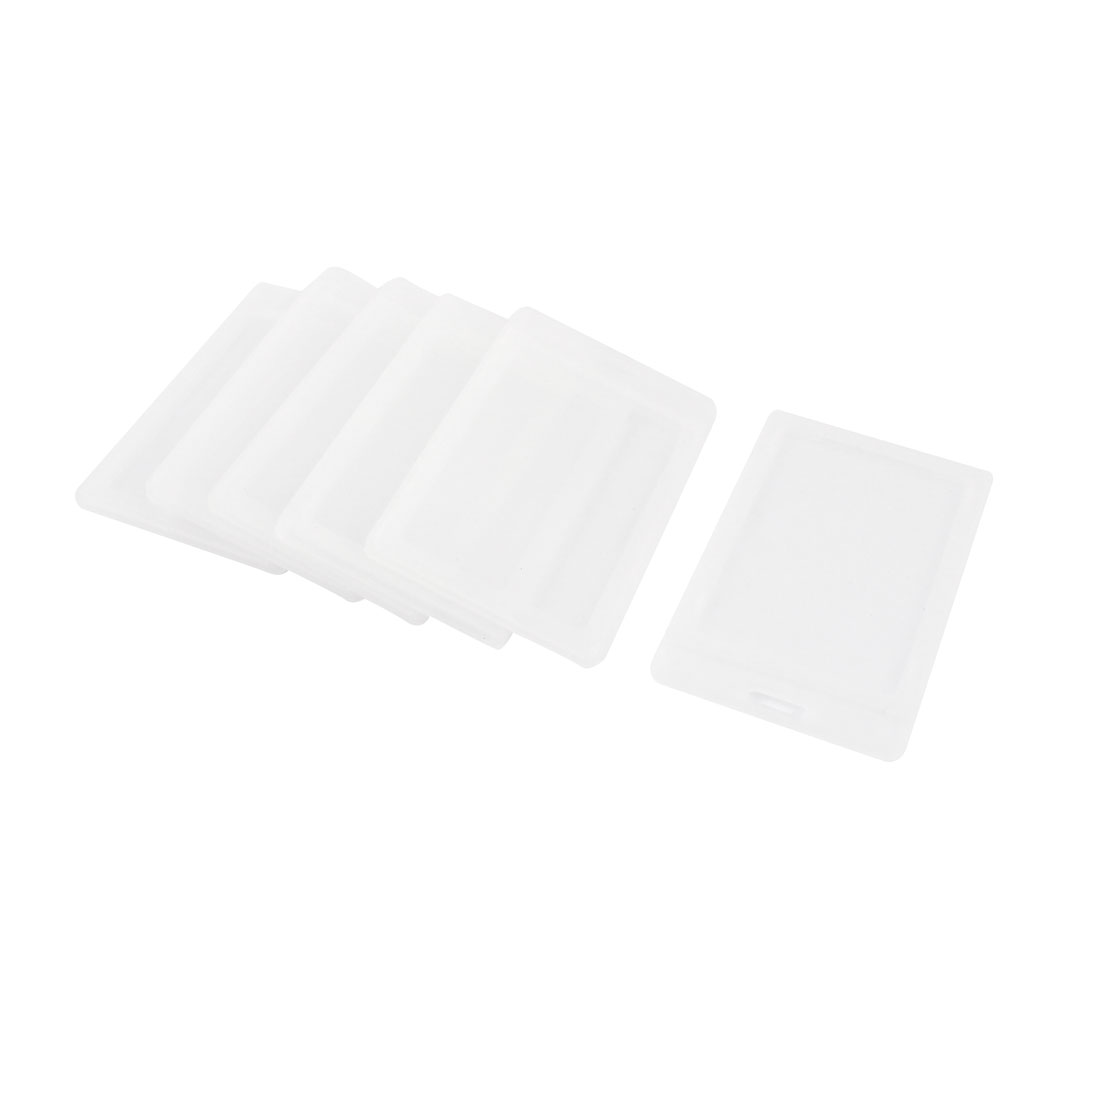 6pcs Clear Plastic Vertical Two Cards ID Card Badge Holder 54mm x 90mm